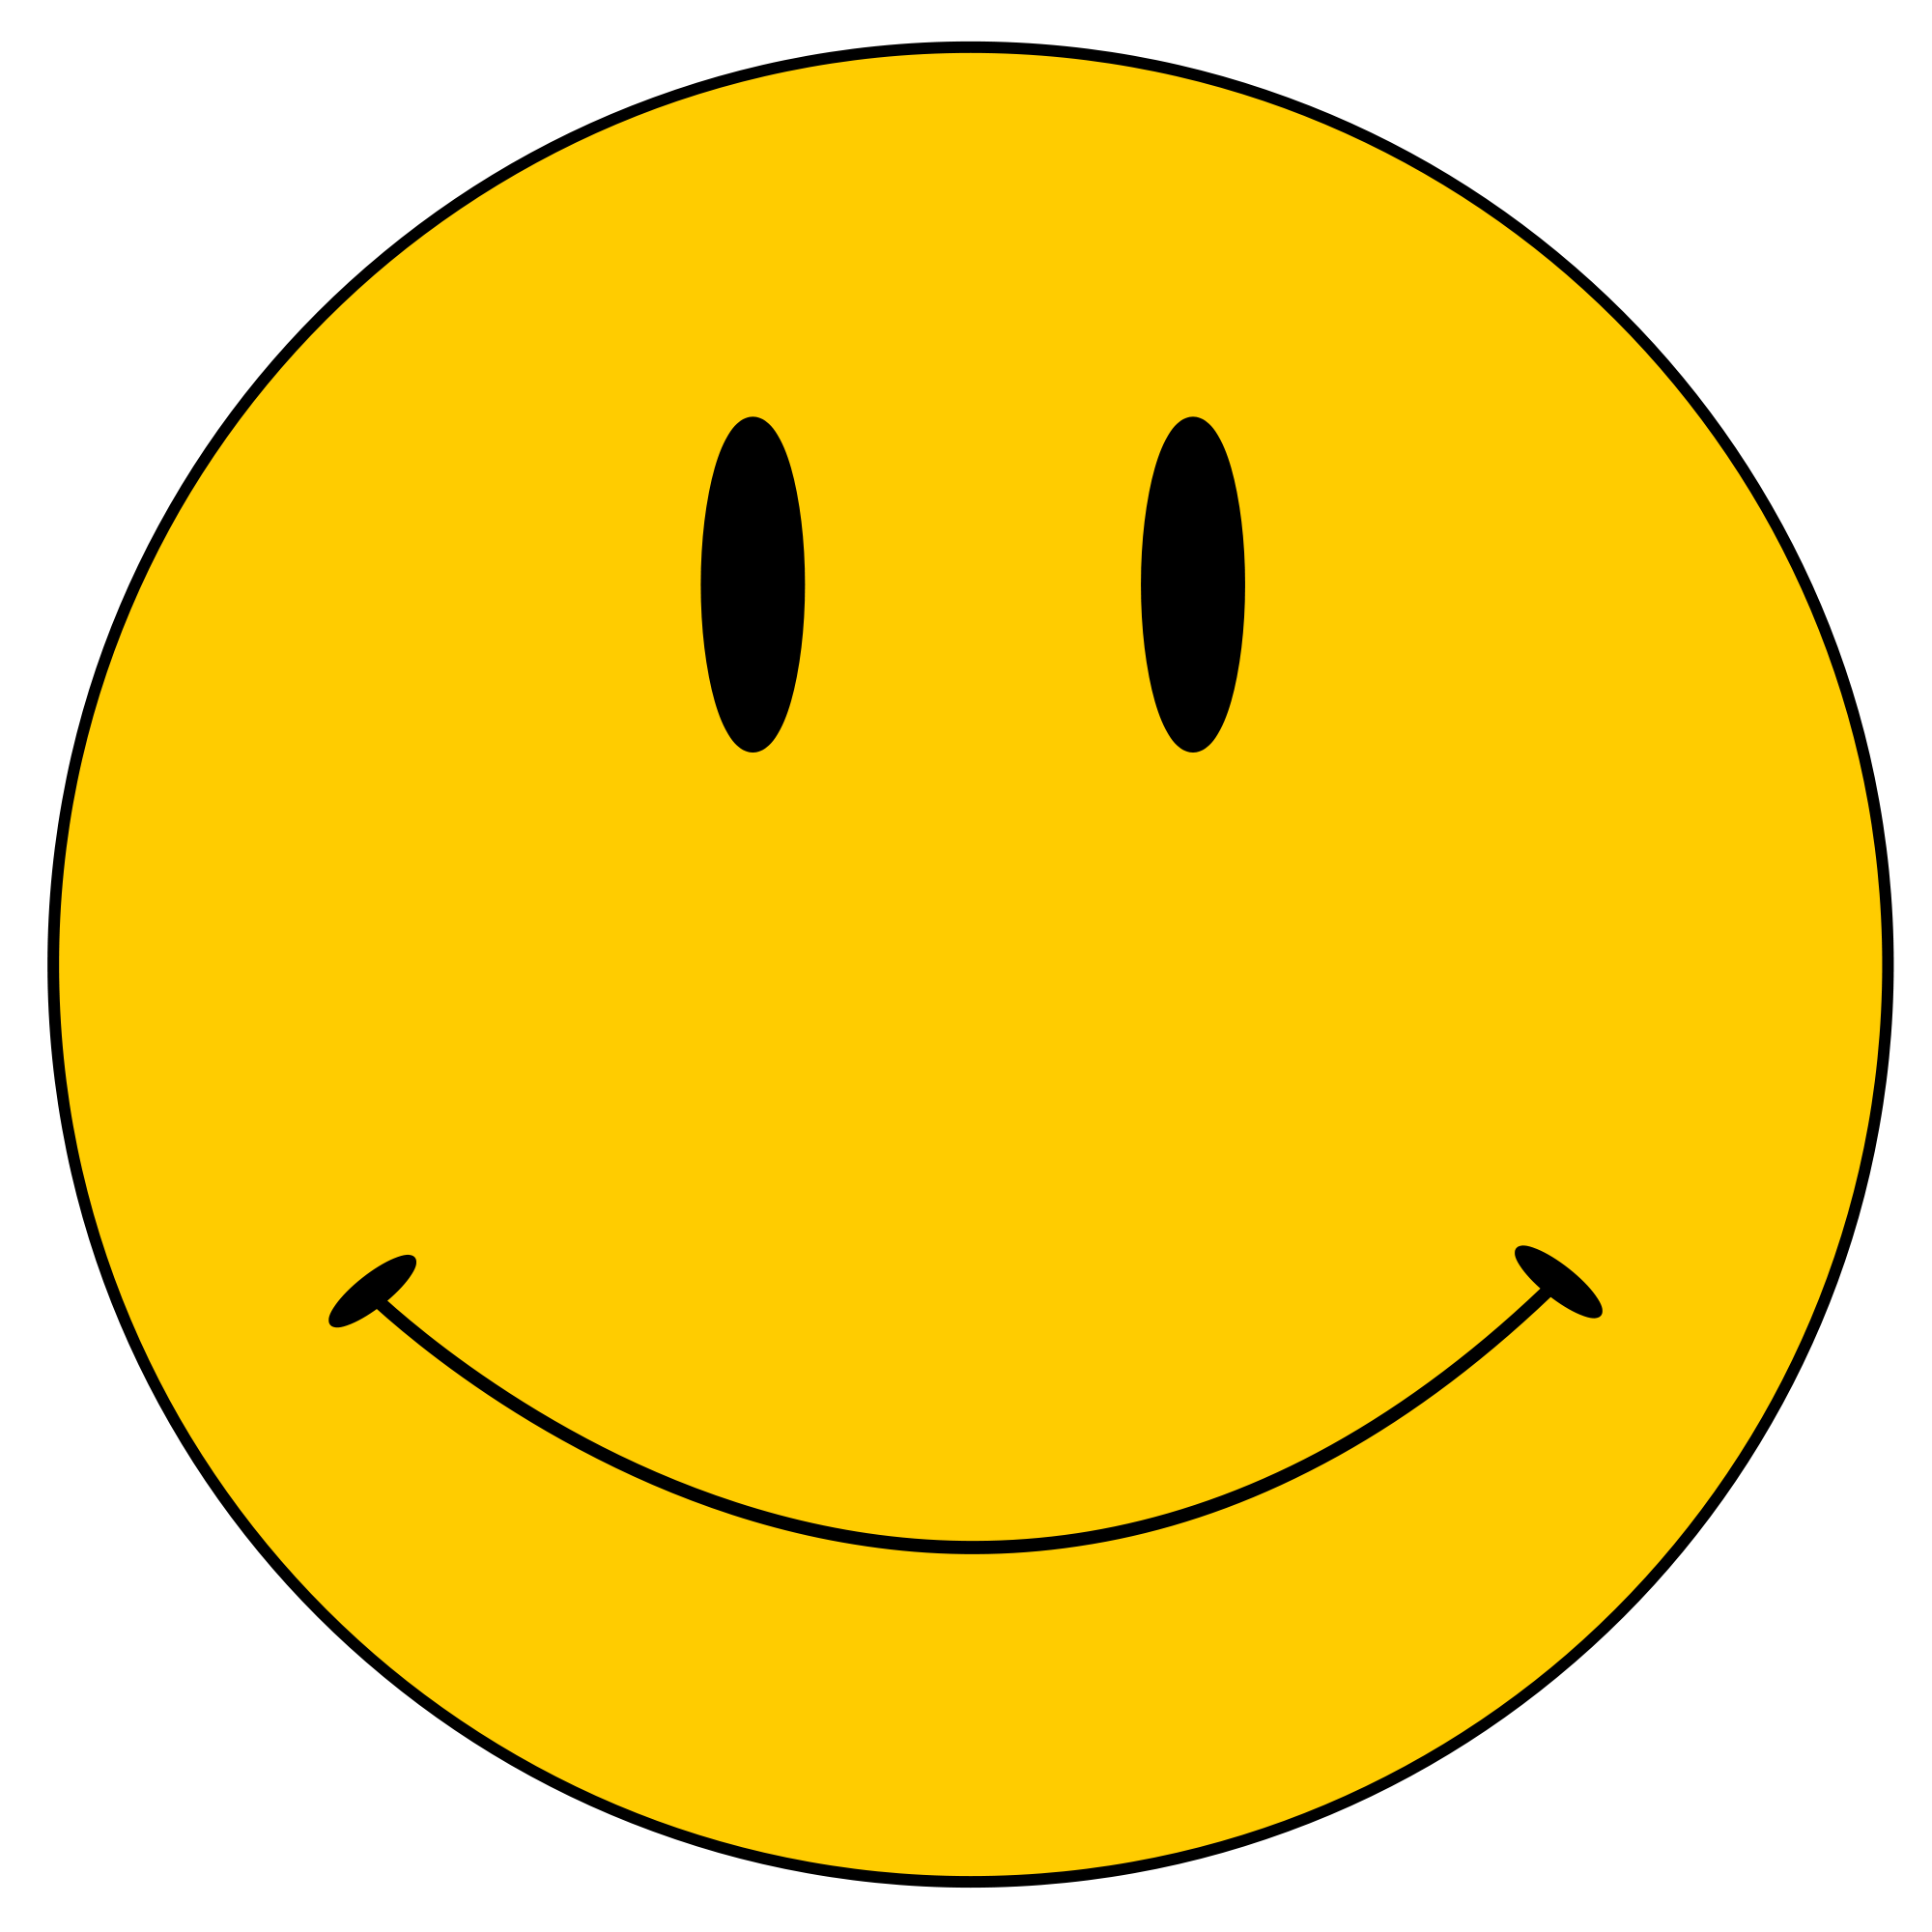 Yellow Smiley - ClipArt Best